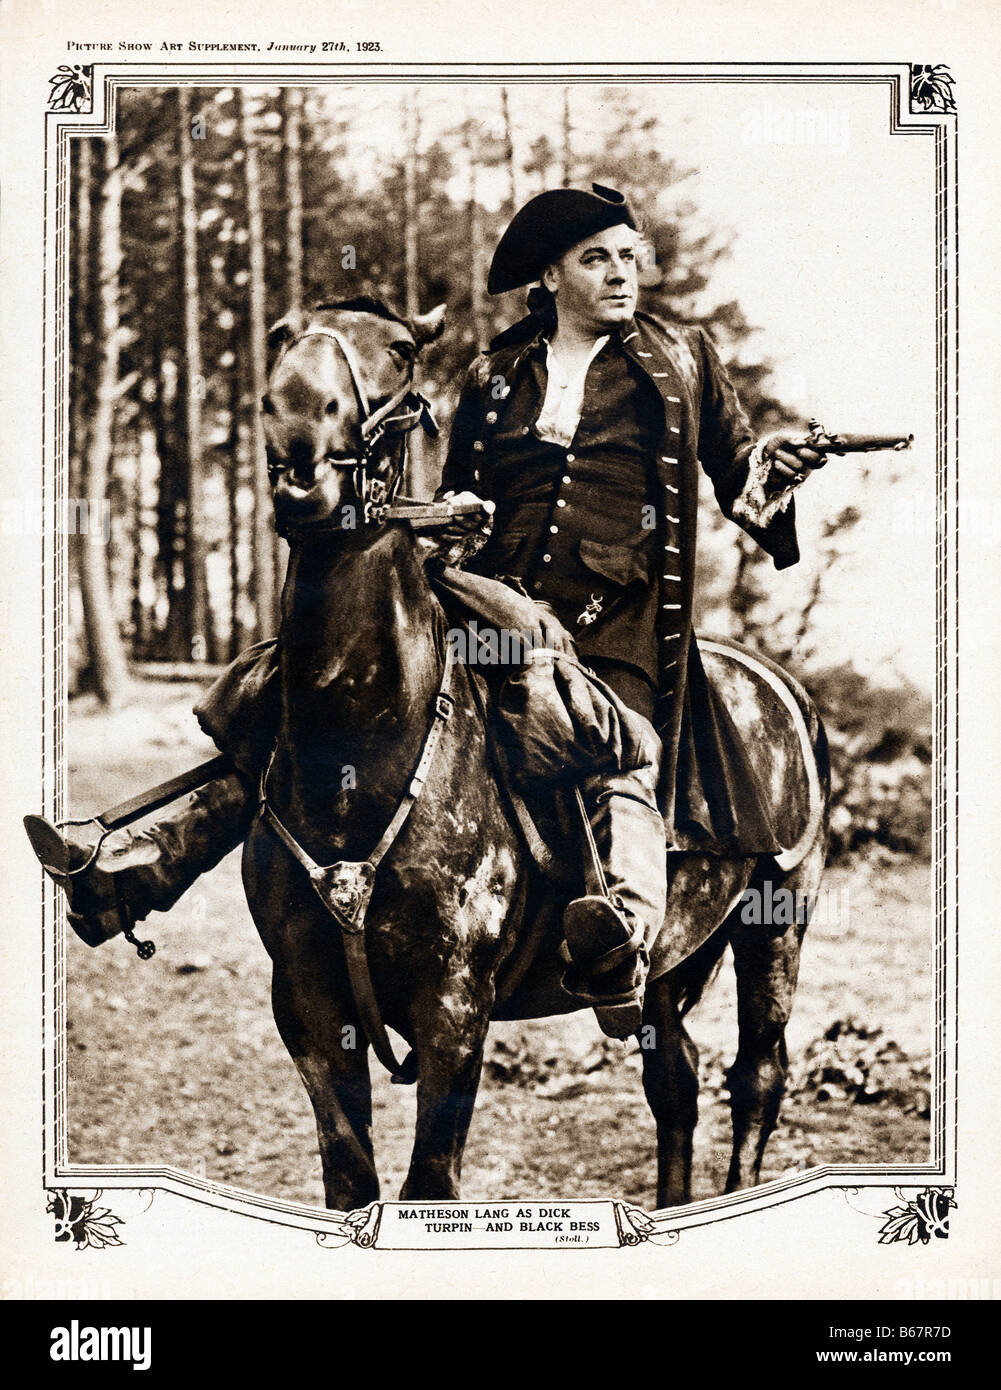 highwayman and bess